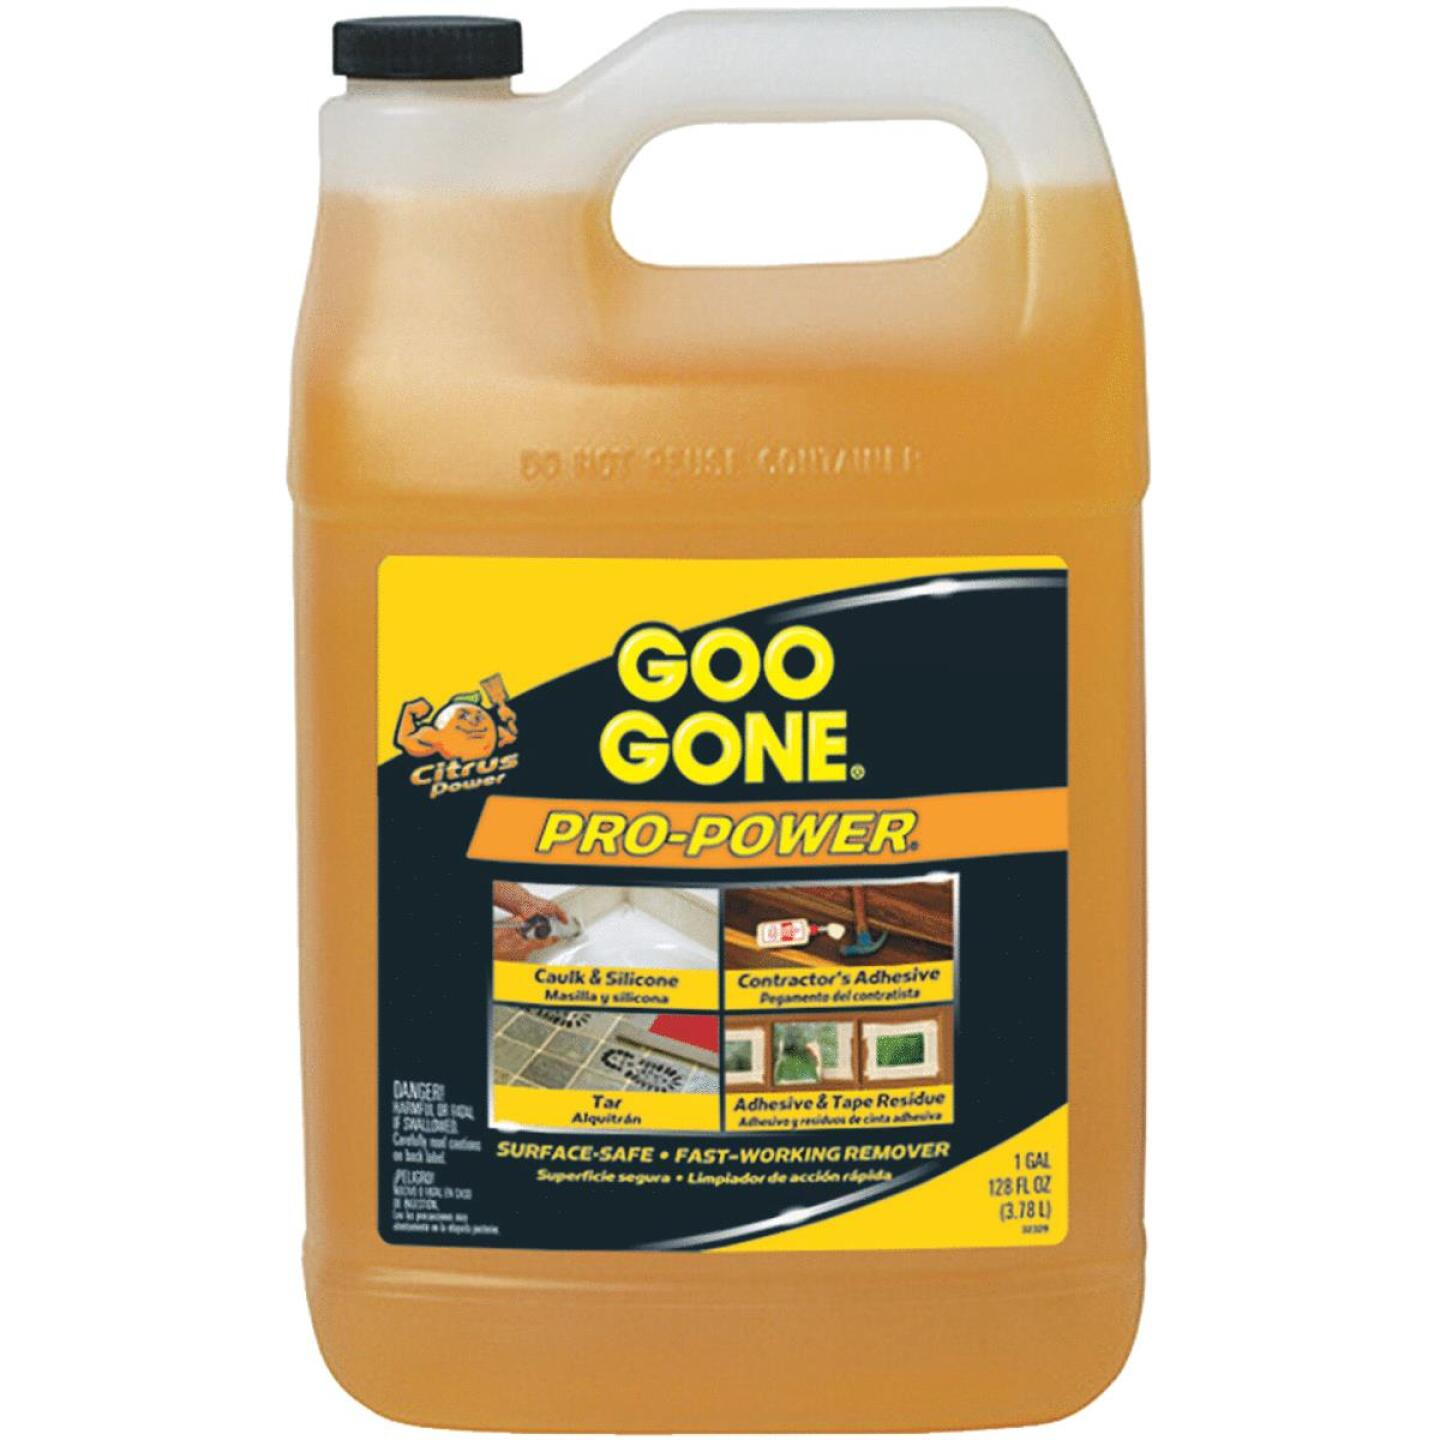 Goo Gone 1 Gal. Pro-Power Adhesive Remover Image 176